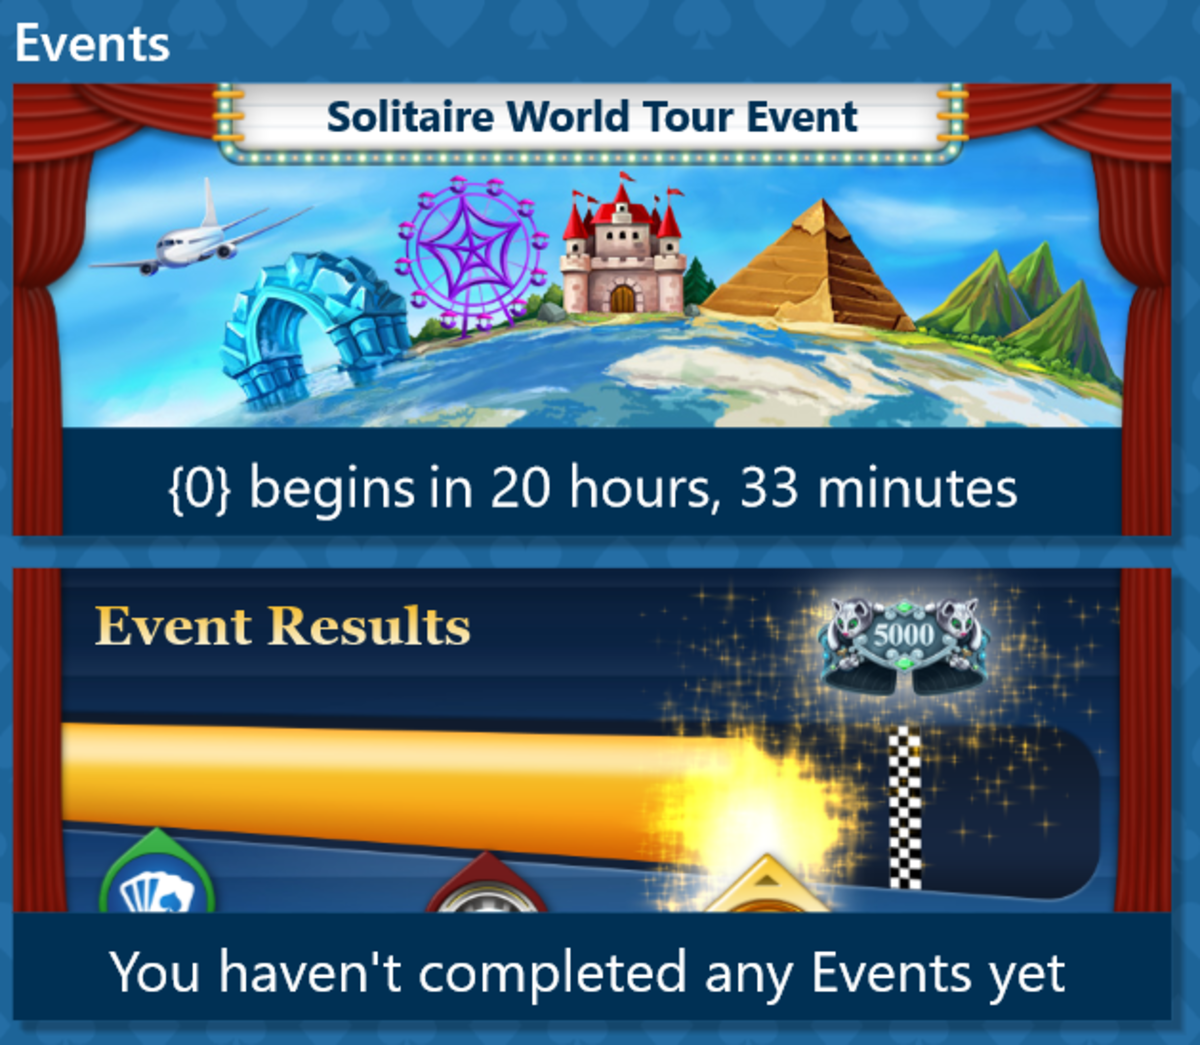 Do you need to upgrade to take part in these events?